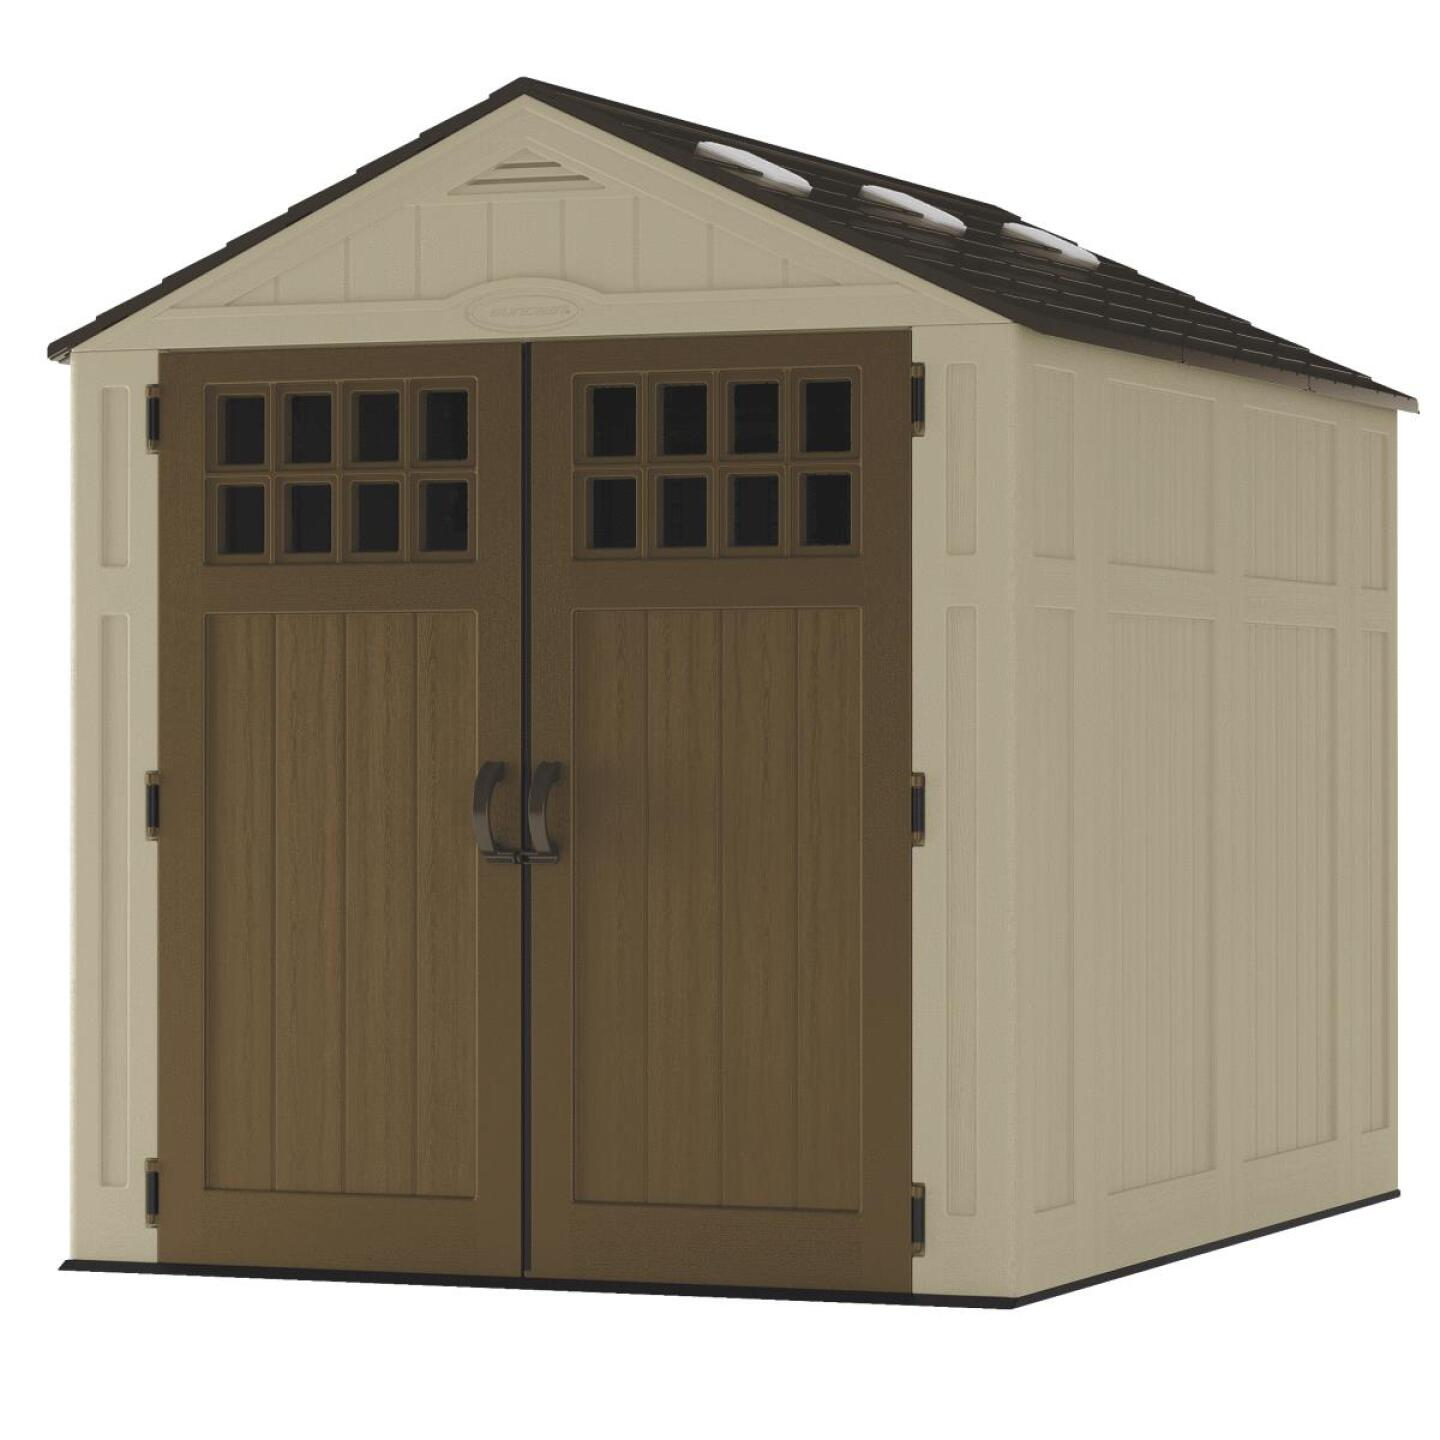 Suncast Everett 306 Cu. Ft. Storage Shed Image 1